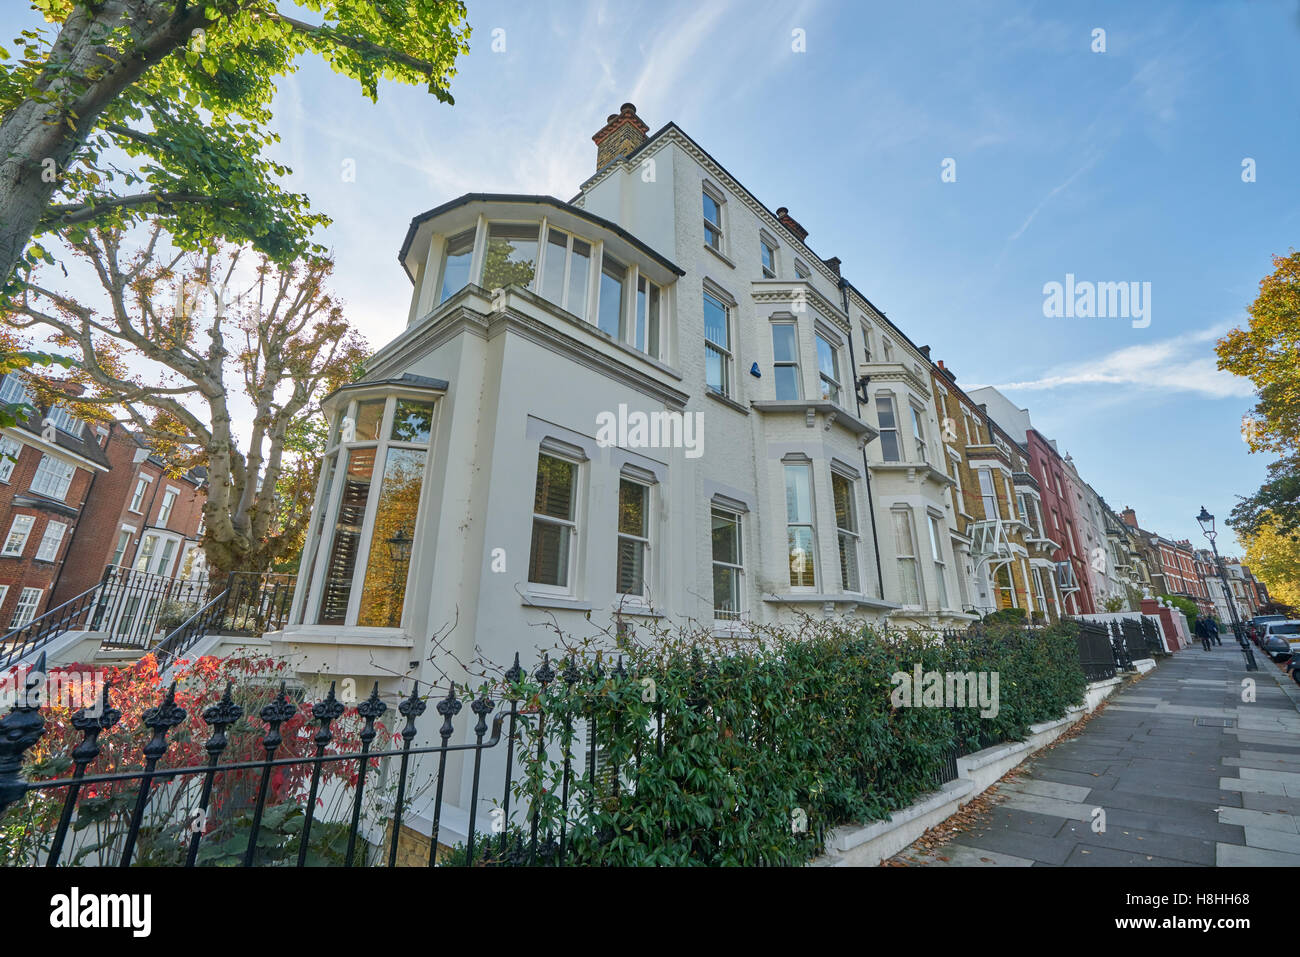 Expensive Houses  Hampstead. - Stock Image